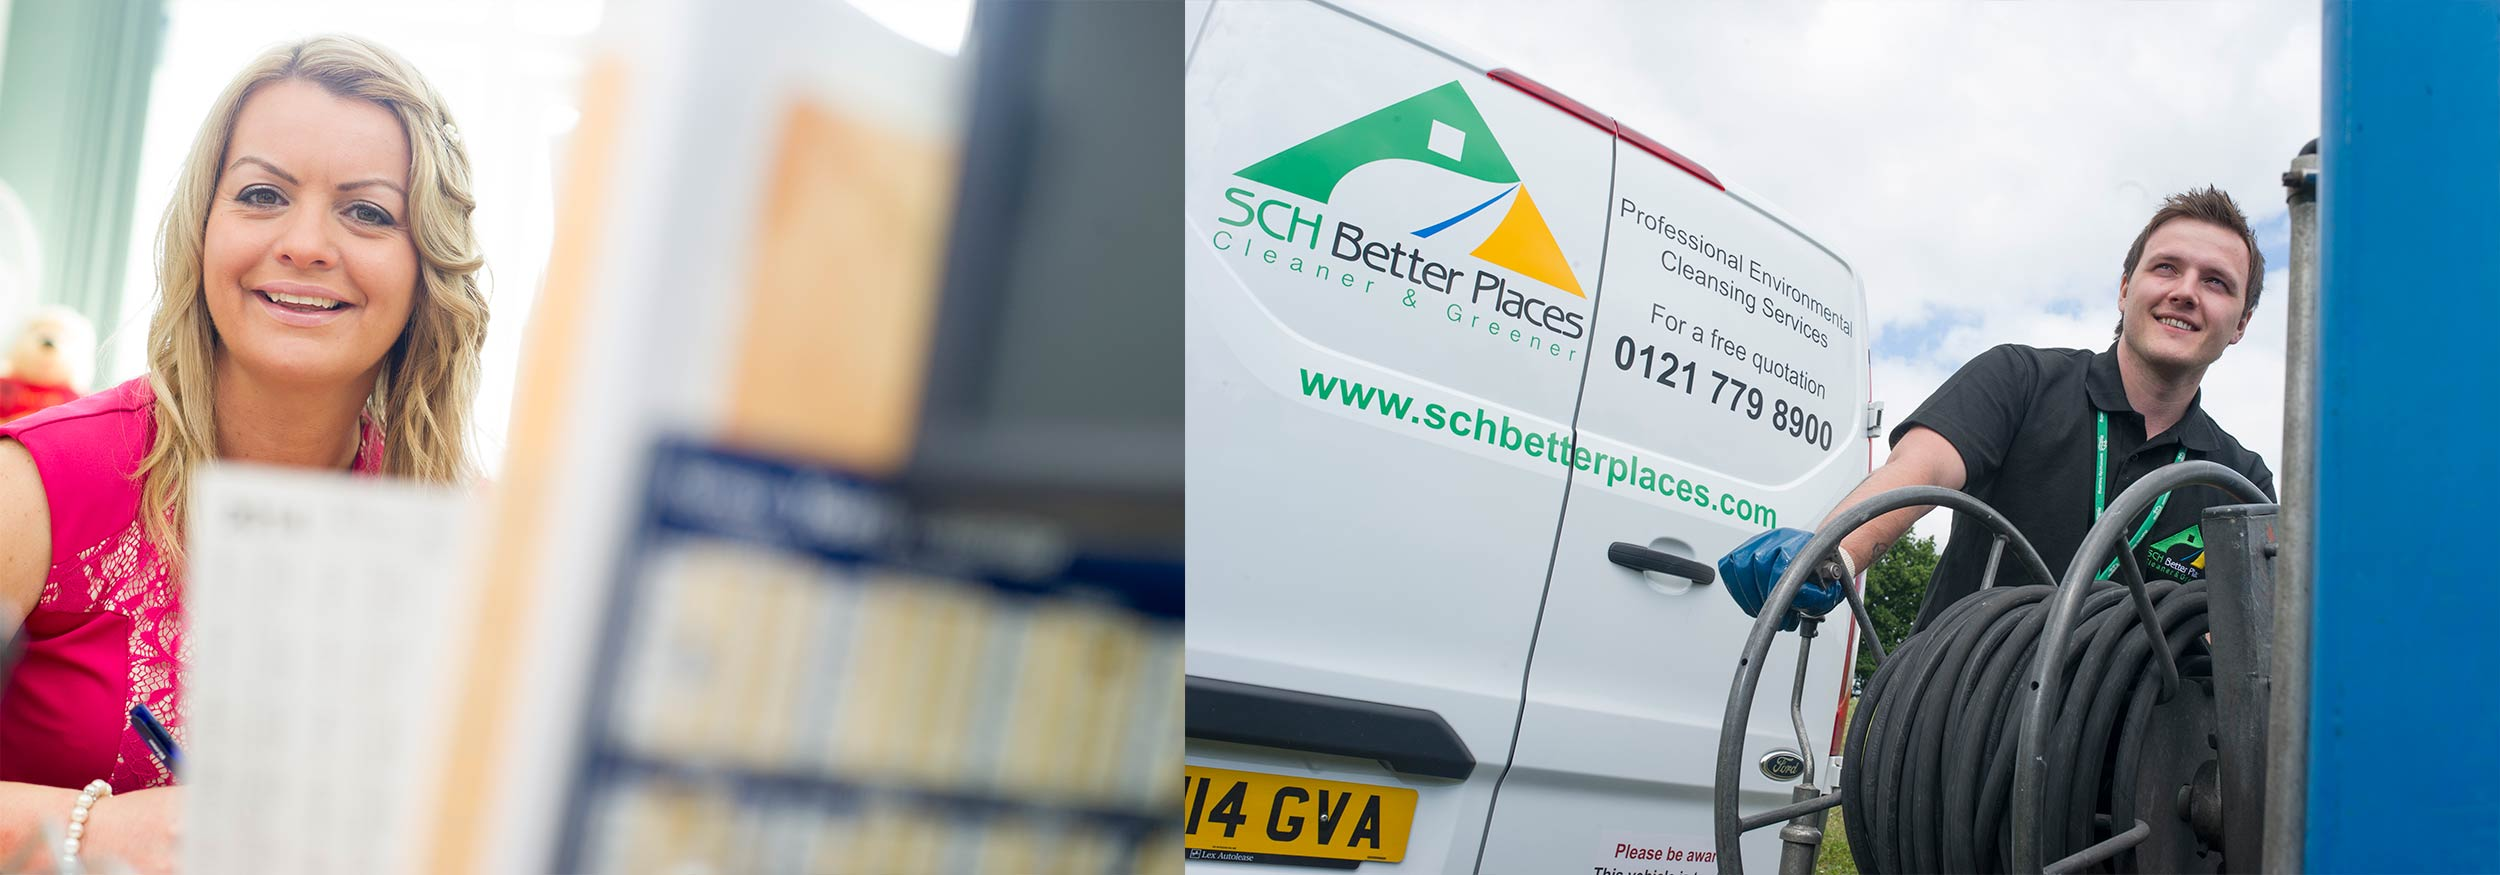 about-us-help-sch-better-places-solihull-experts